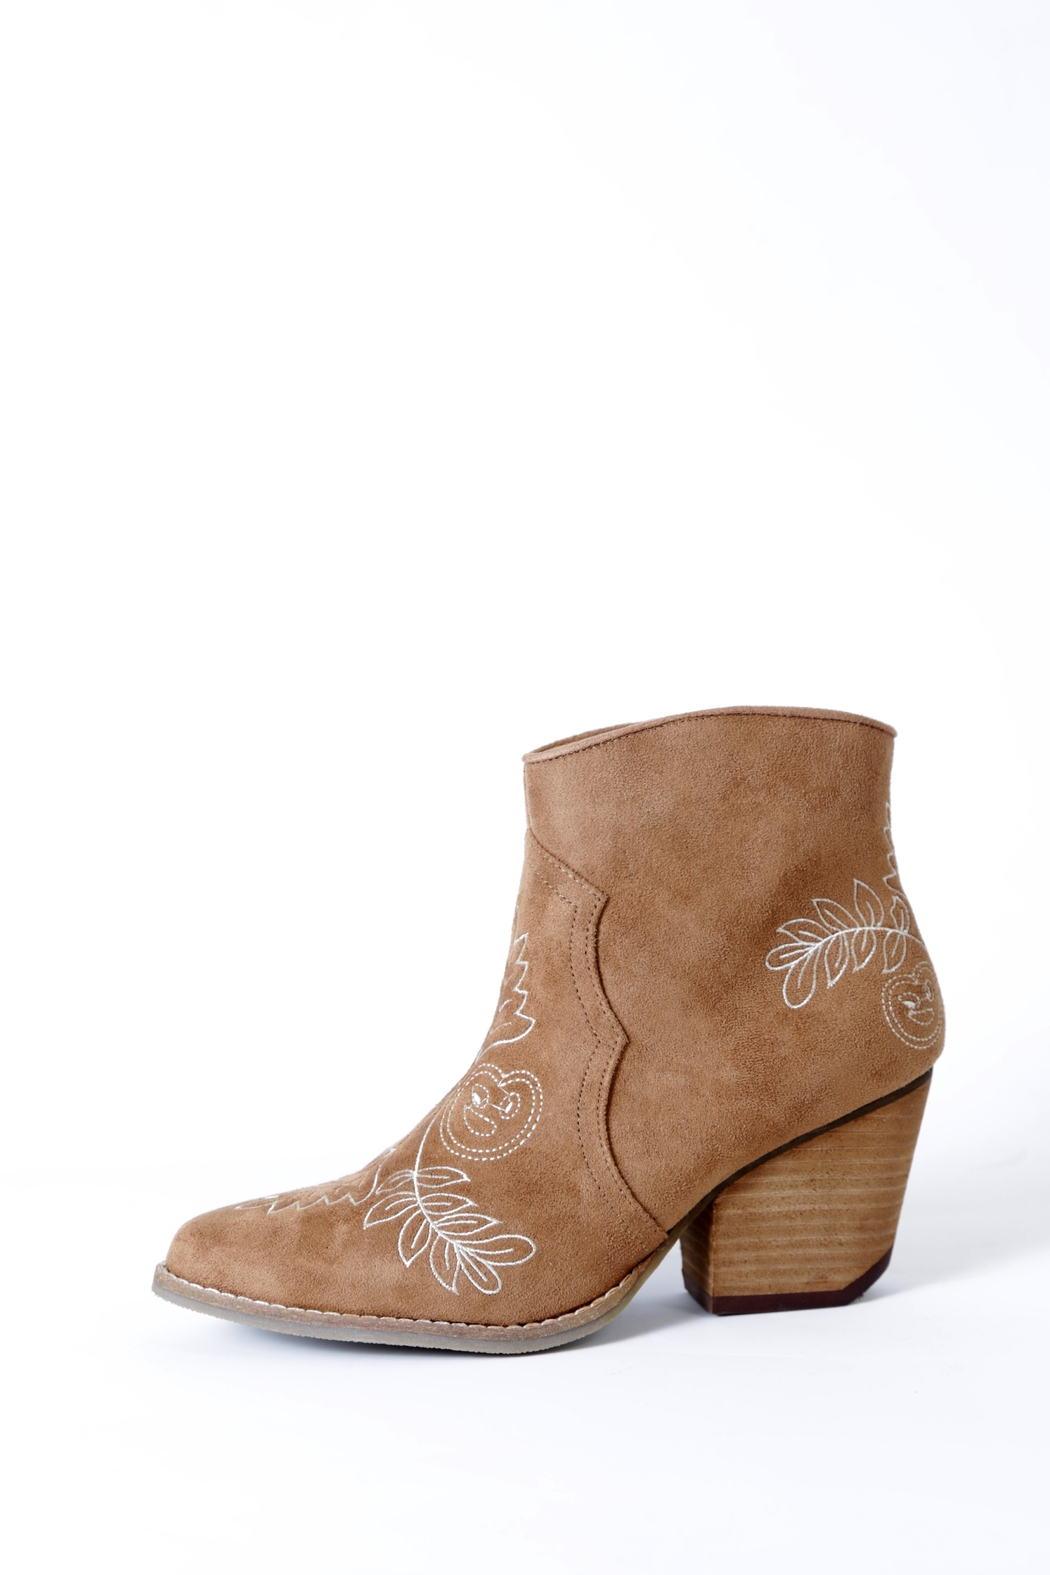 Axis Embroidered Boot